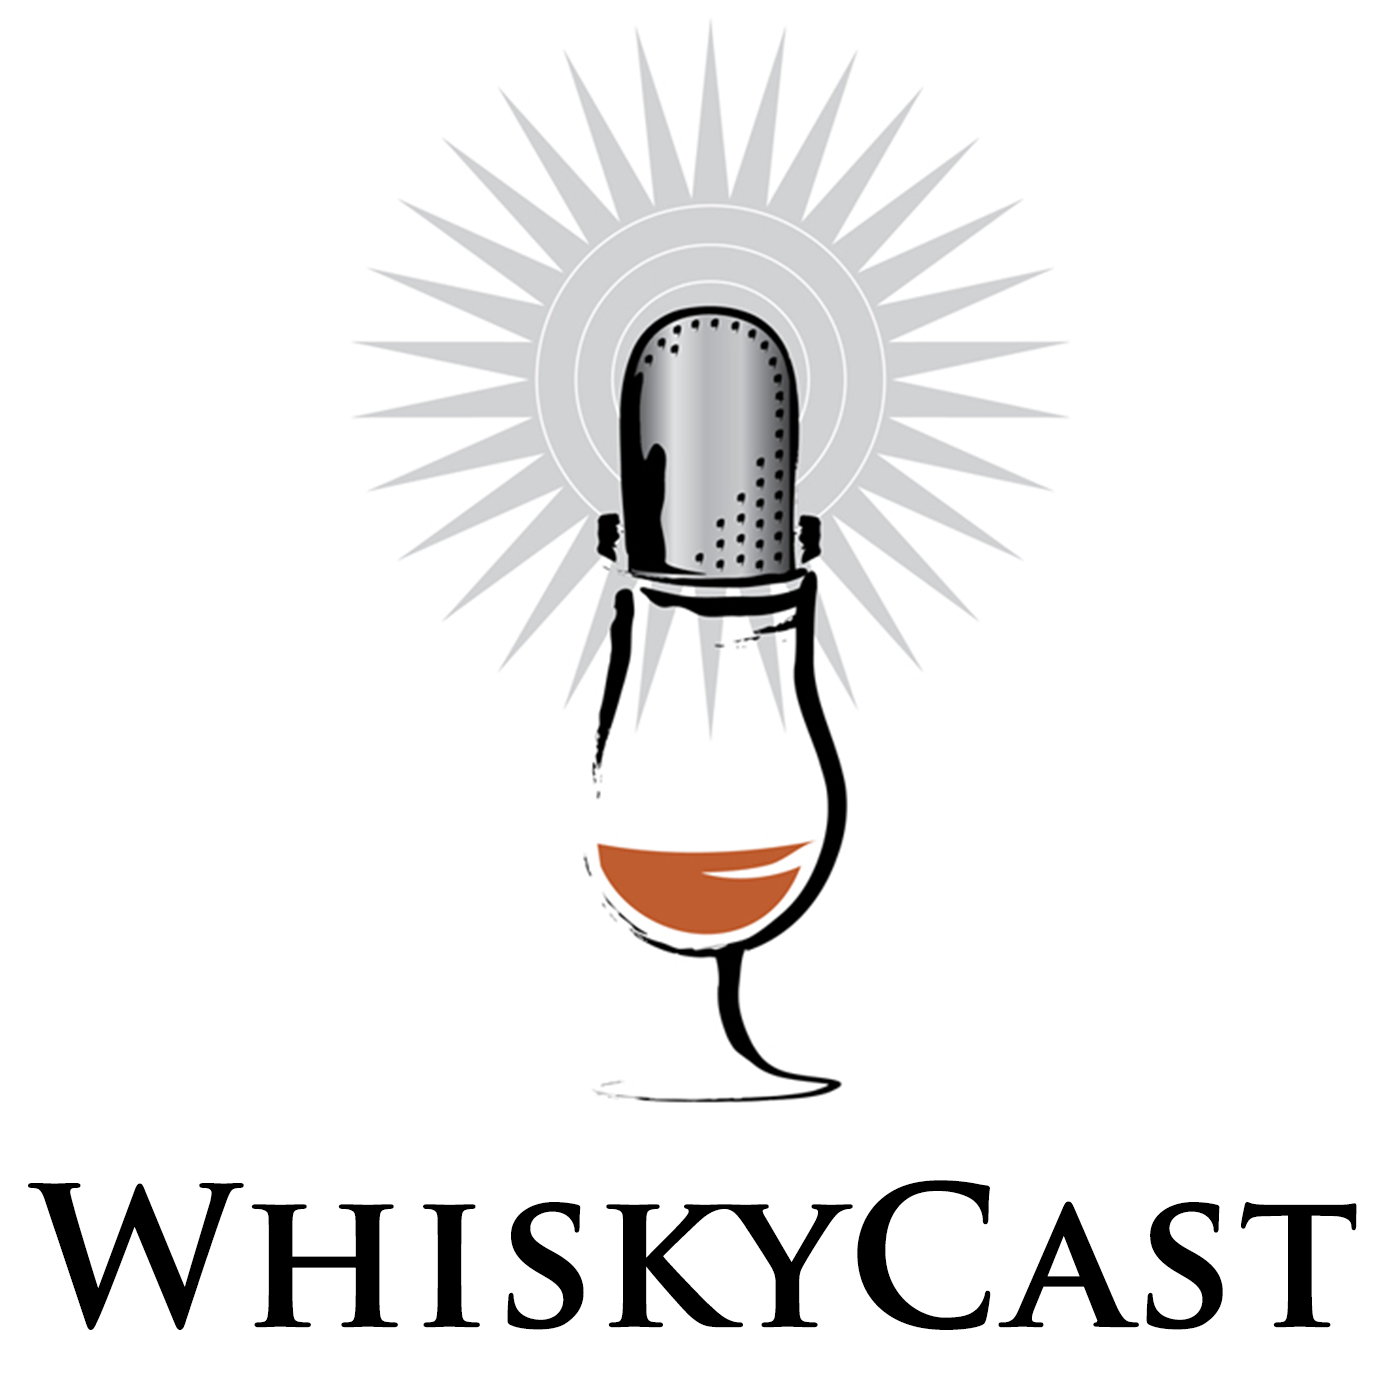 WhiskyCast Episode 465: February 8, 2014